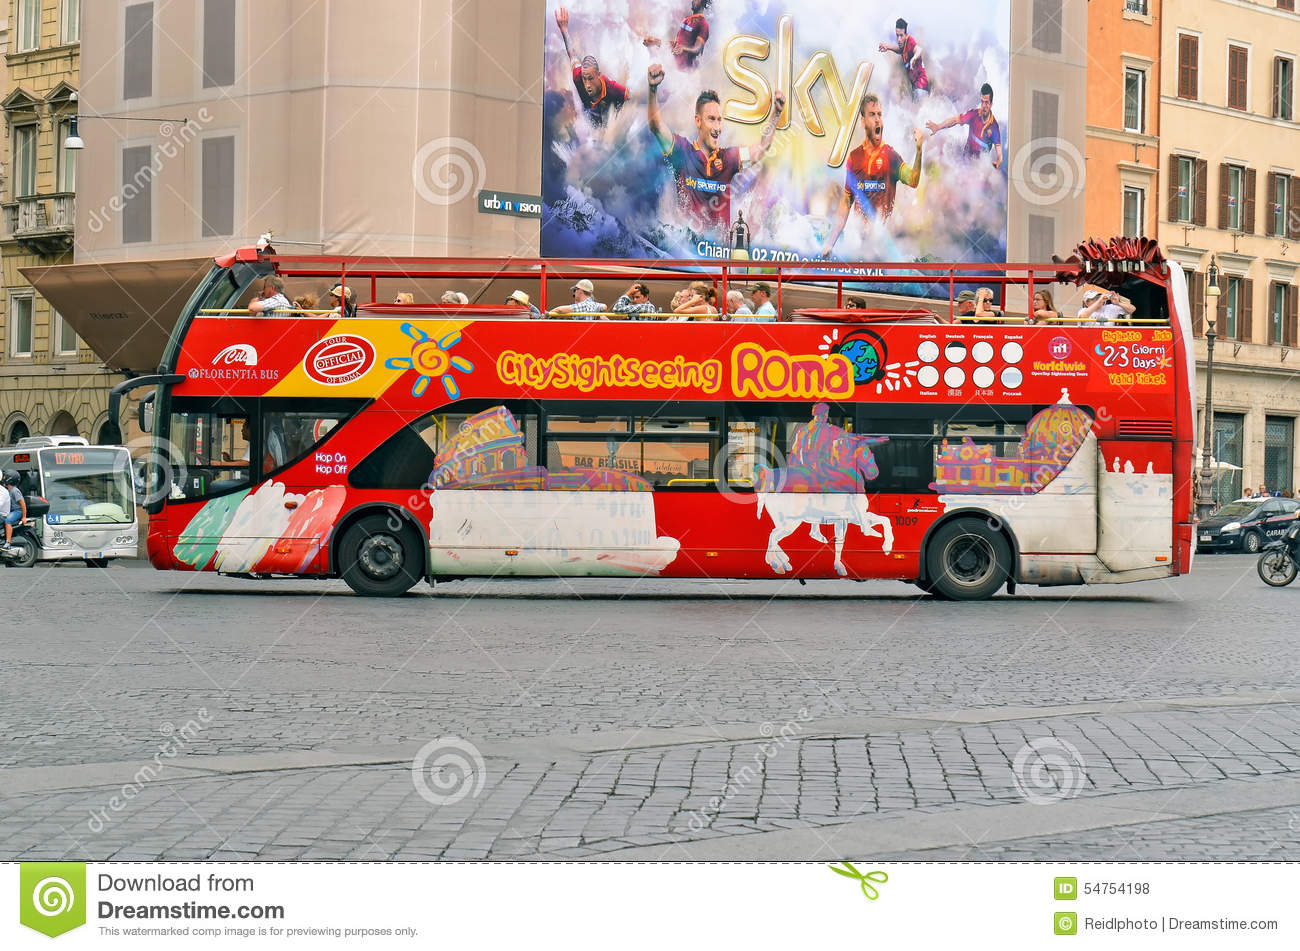 Bus ROMS, ITALIEN Citysightseeing Rom